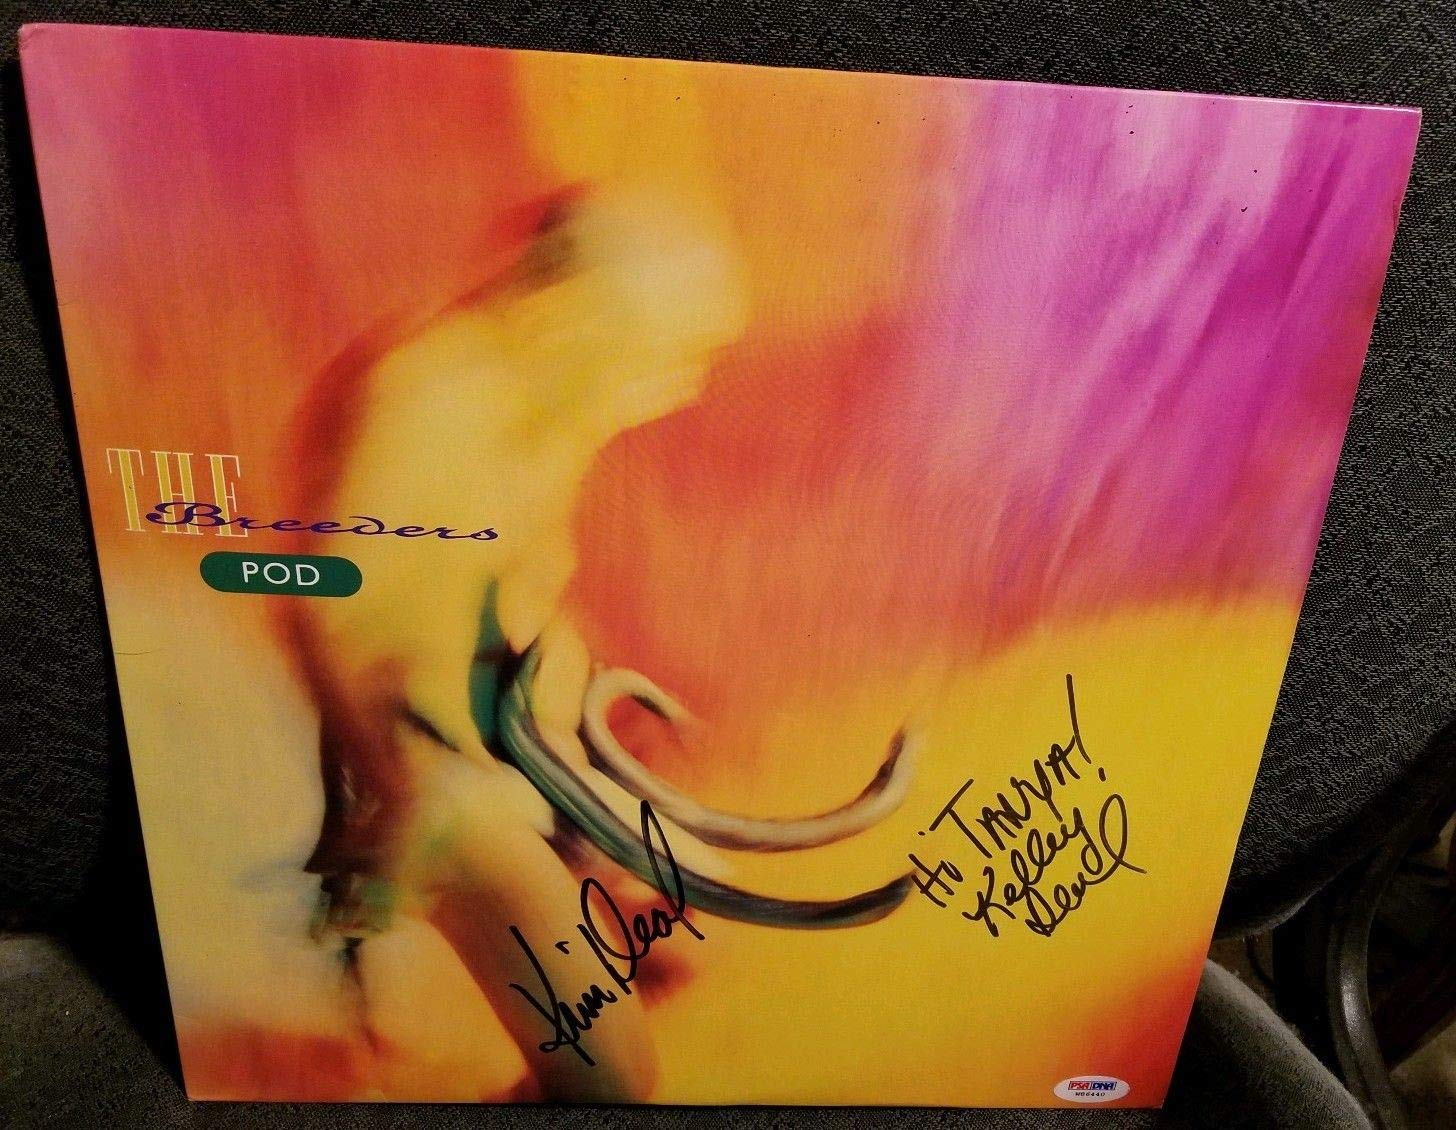 The Breeders Pod Autographed Signed Lp PSA/DNA Authentic Sticker Only Kim & Kelley Deal Autographed Signed